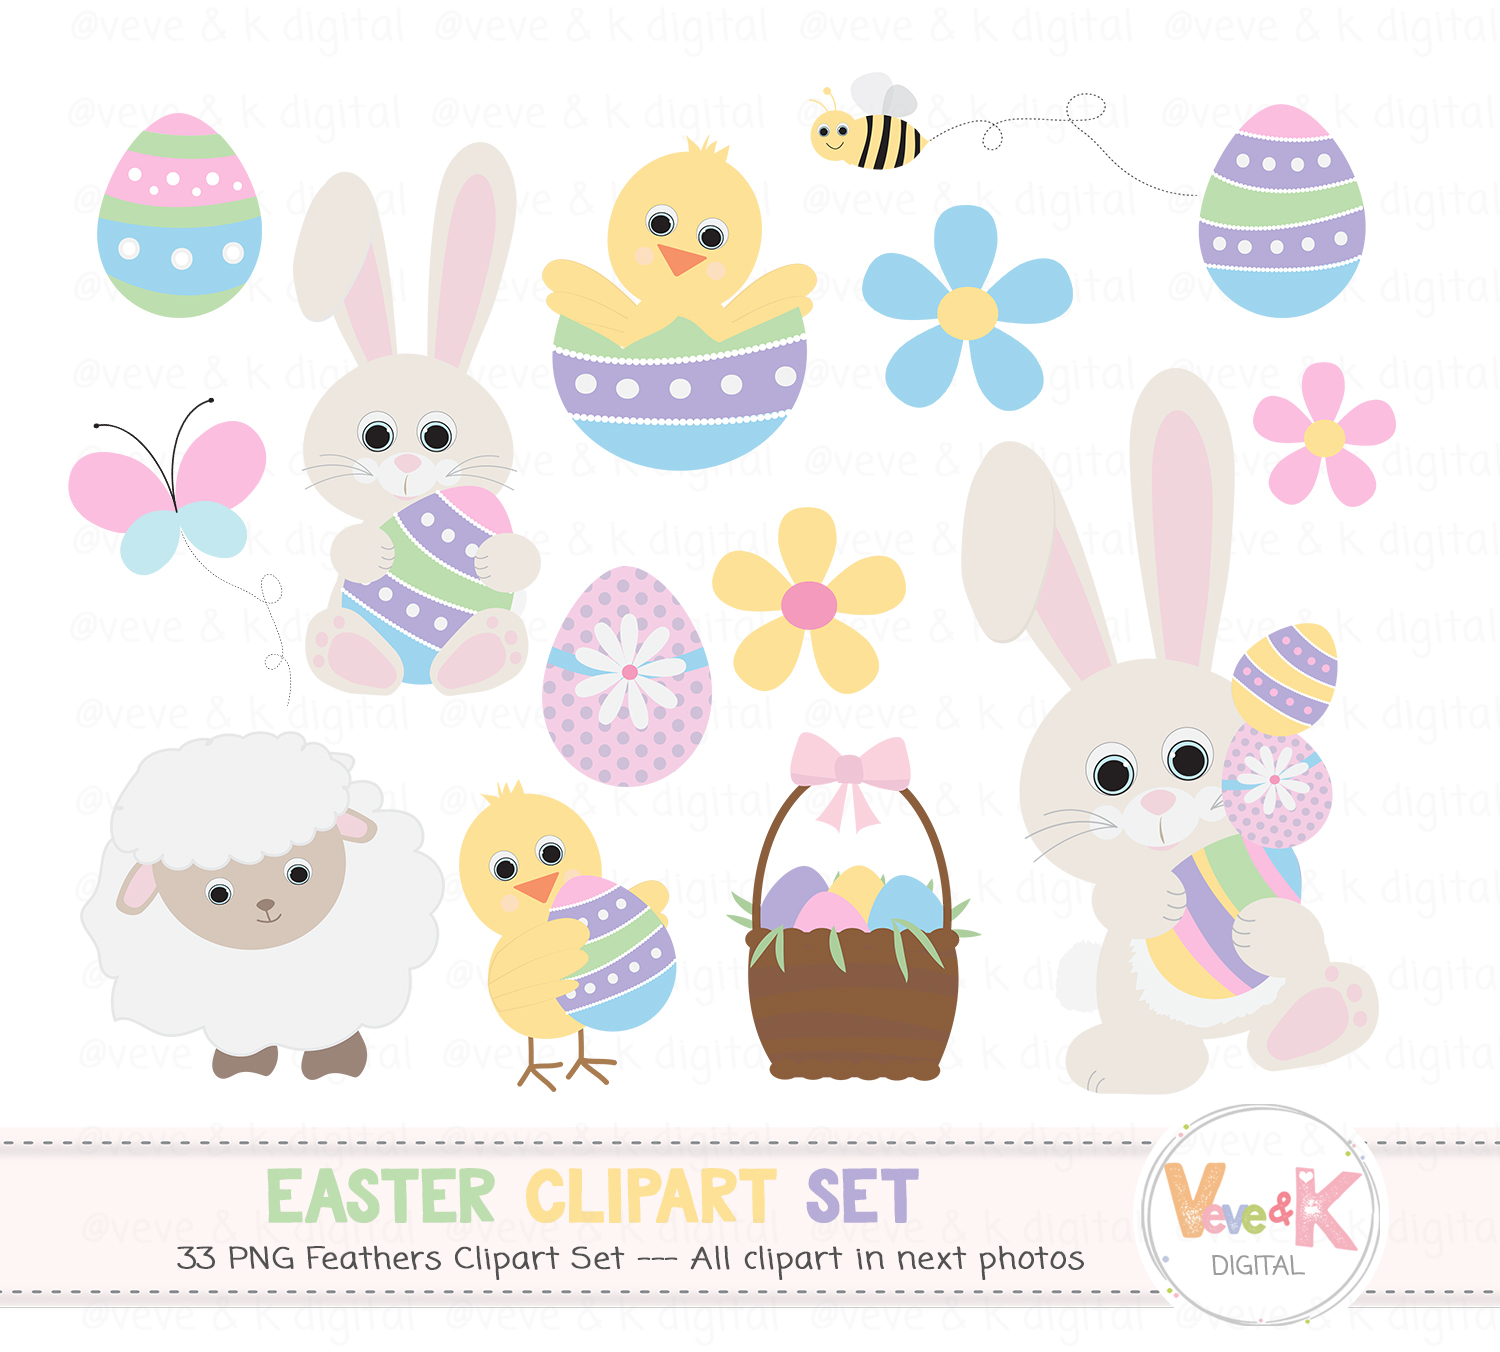 Easter Bunny Clipart, Easter Clipart, Easter Graphics, Spring Flowers,  Easter eggs basket, Easter egg hunt, Spring Clipart, Spring Critters.